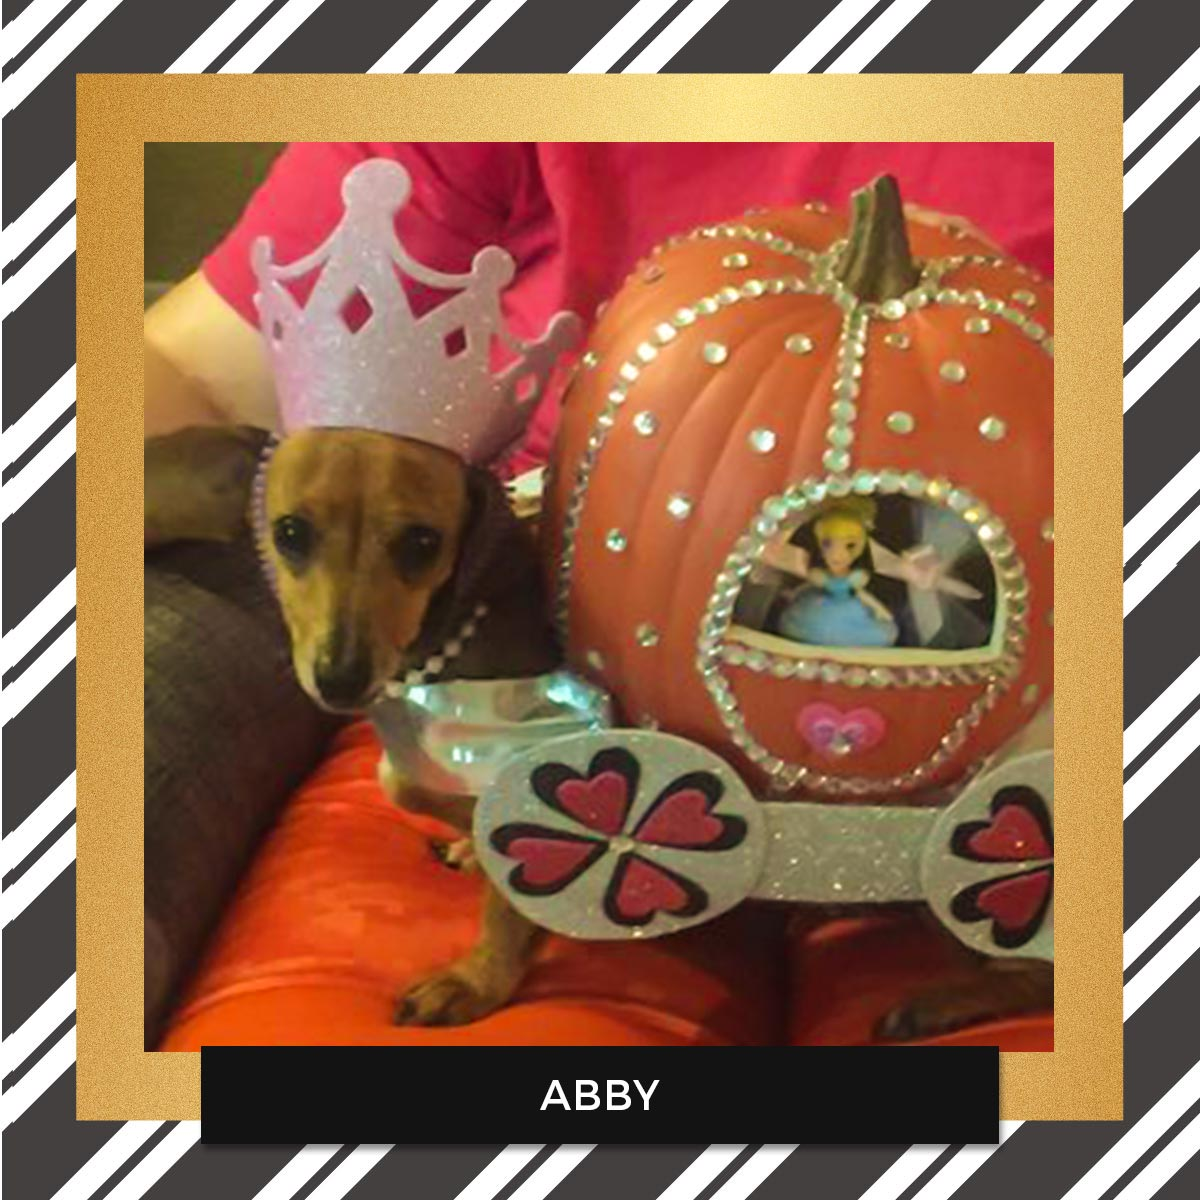 Abby - Halloween Pet Costume Contest Entry